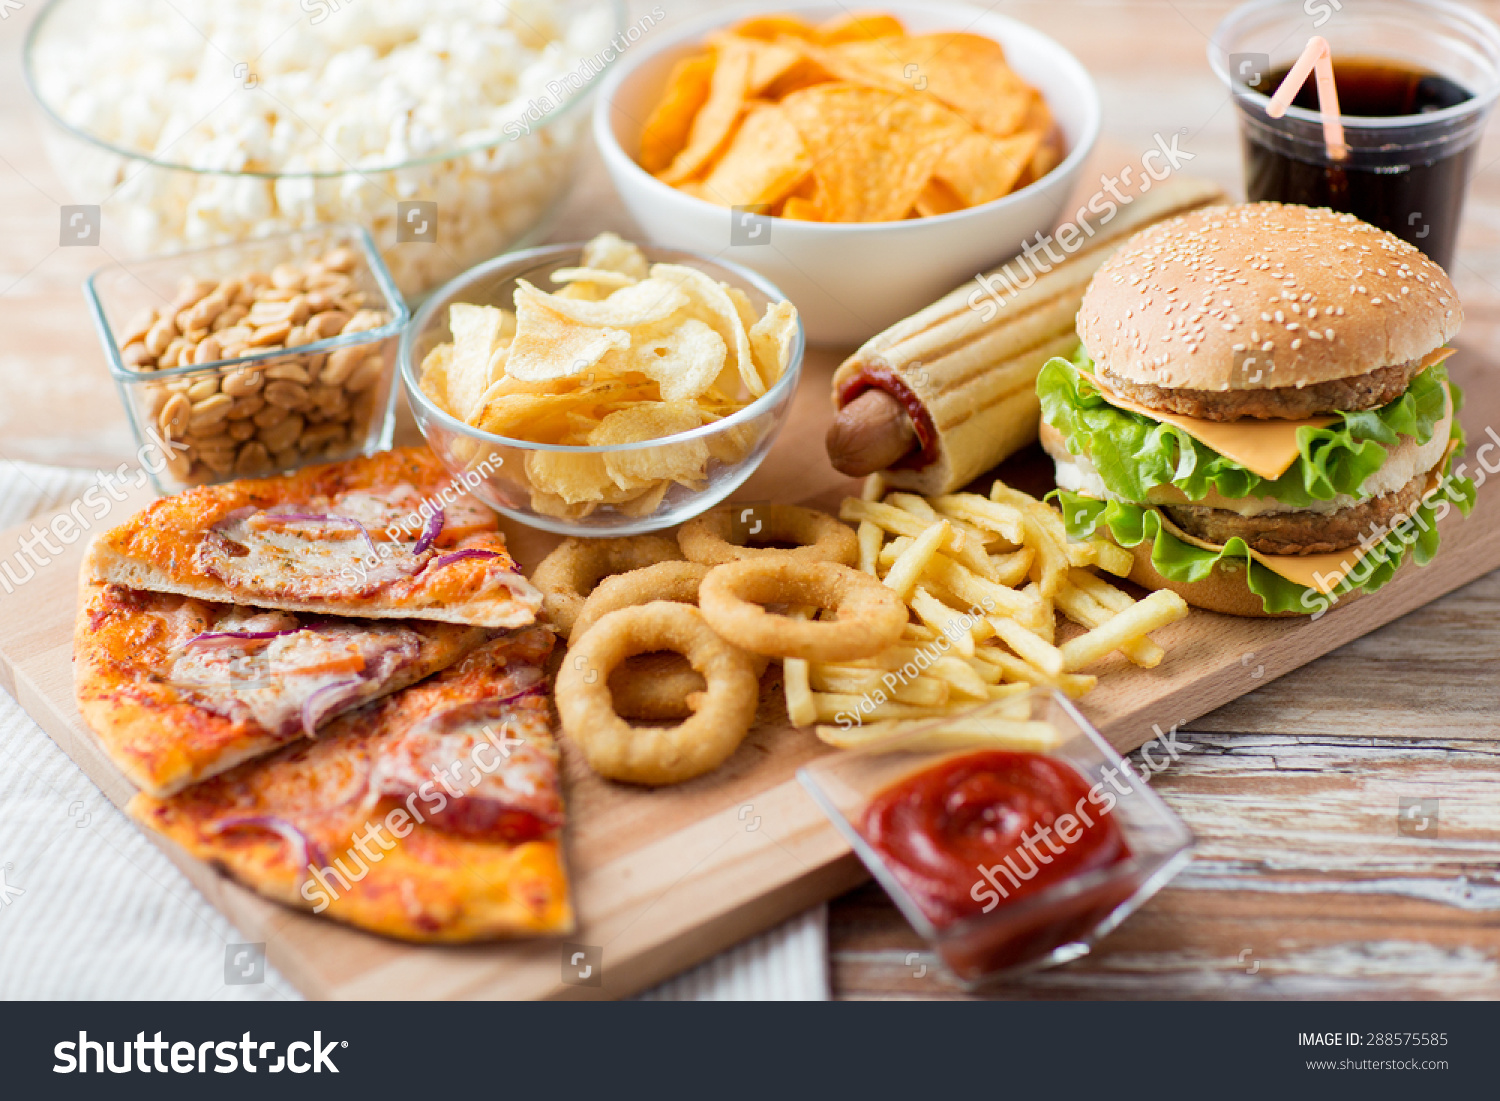 fast food unhealthy eating concept close stock photo 288575585 shutterstock. Black Bedroom Furniture Sets. Home Design Ideas